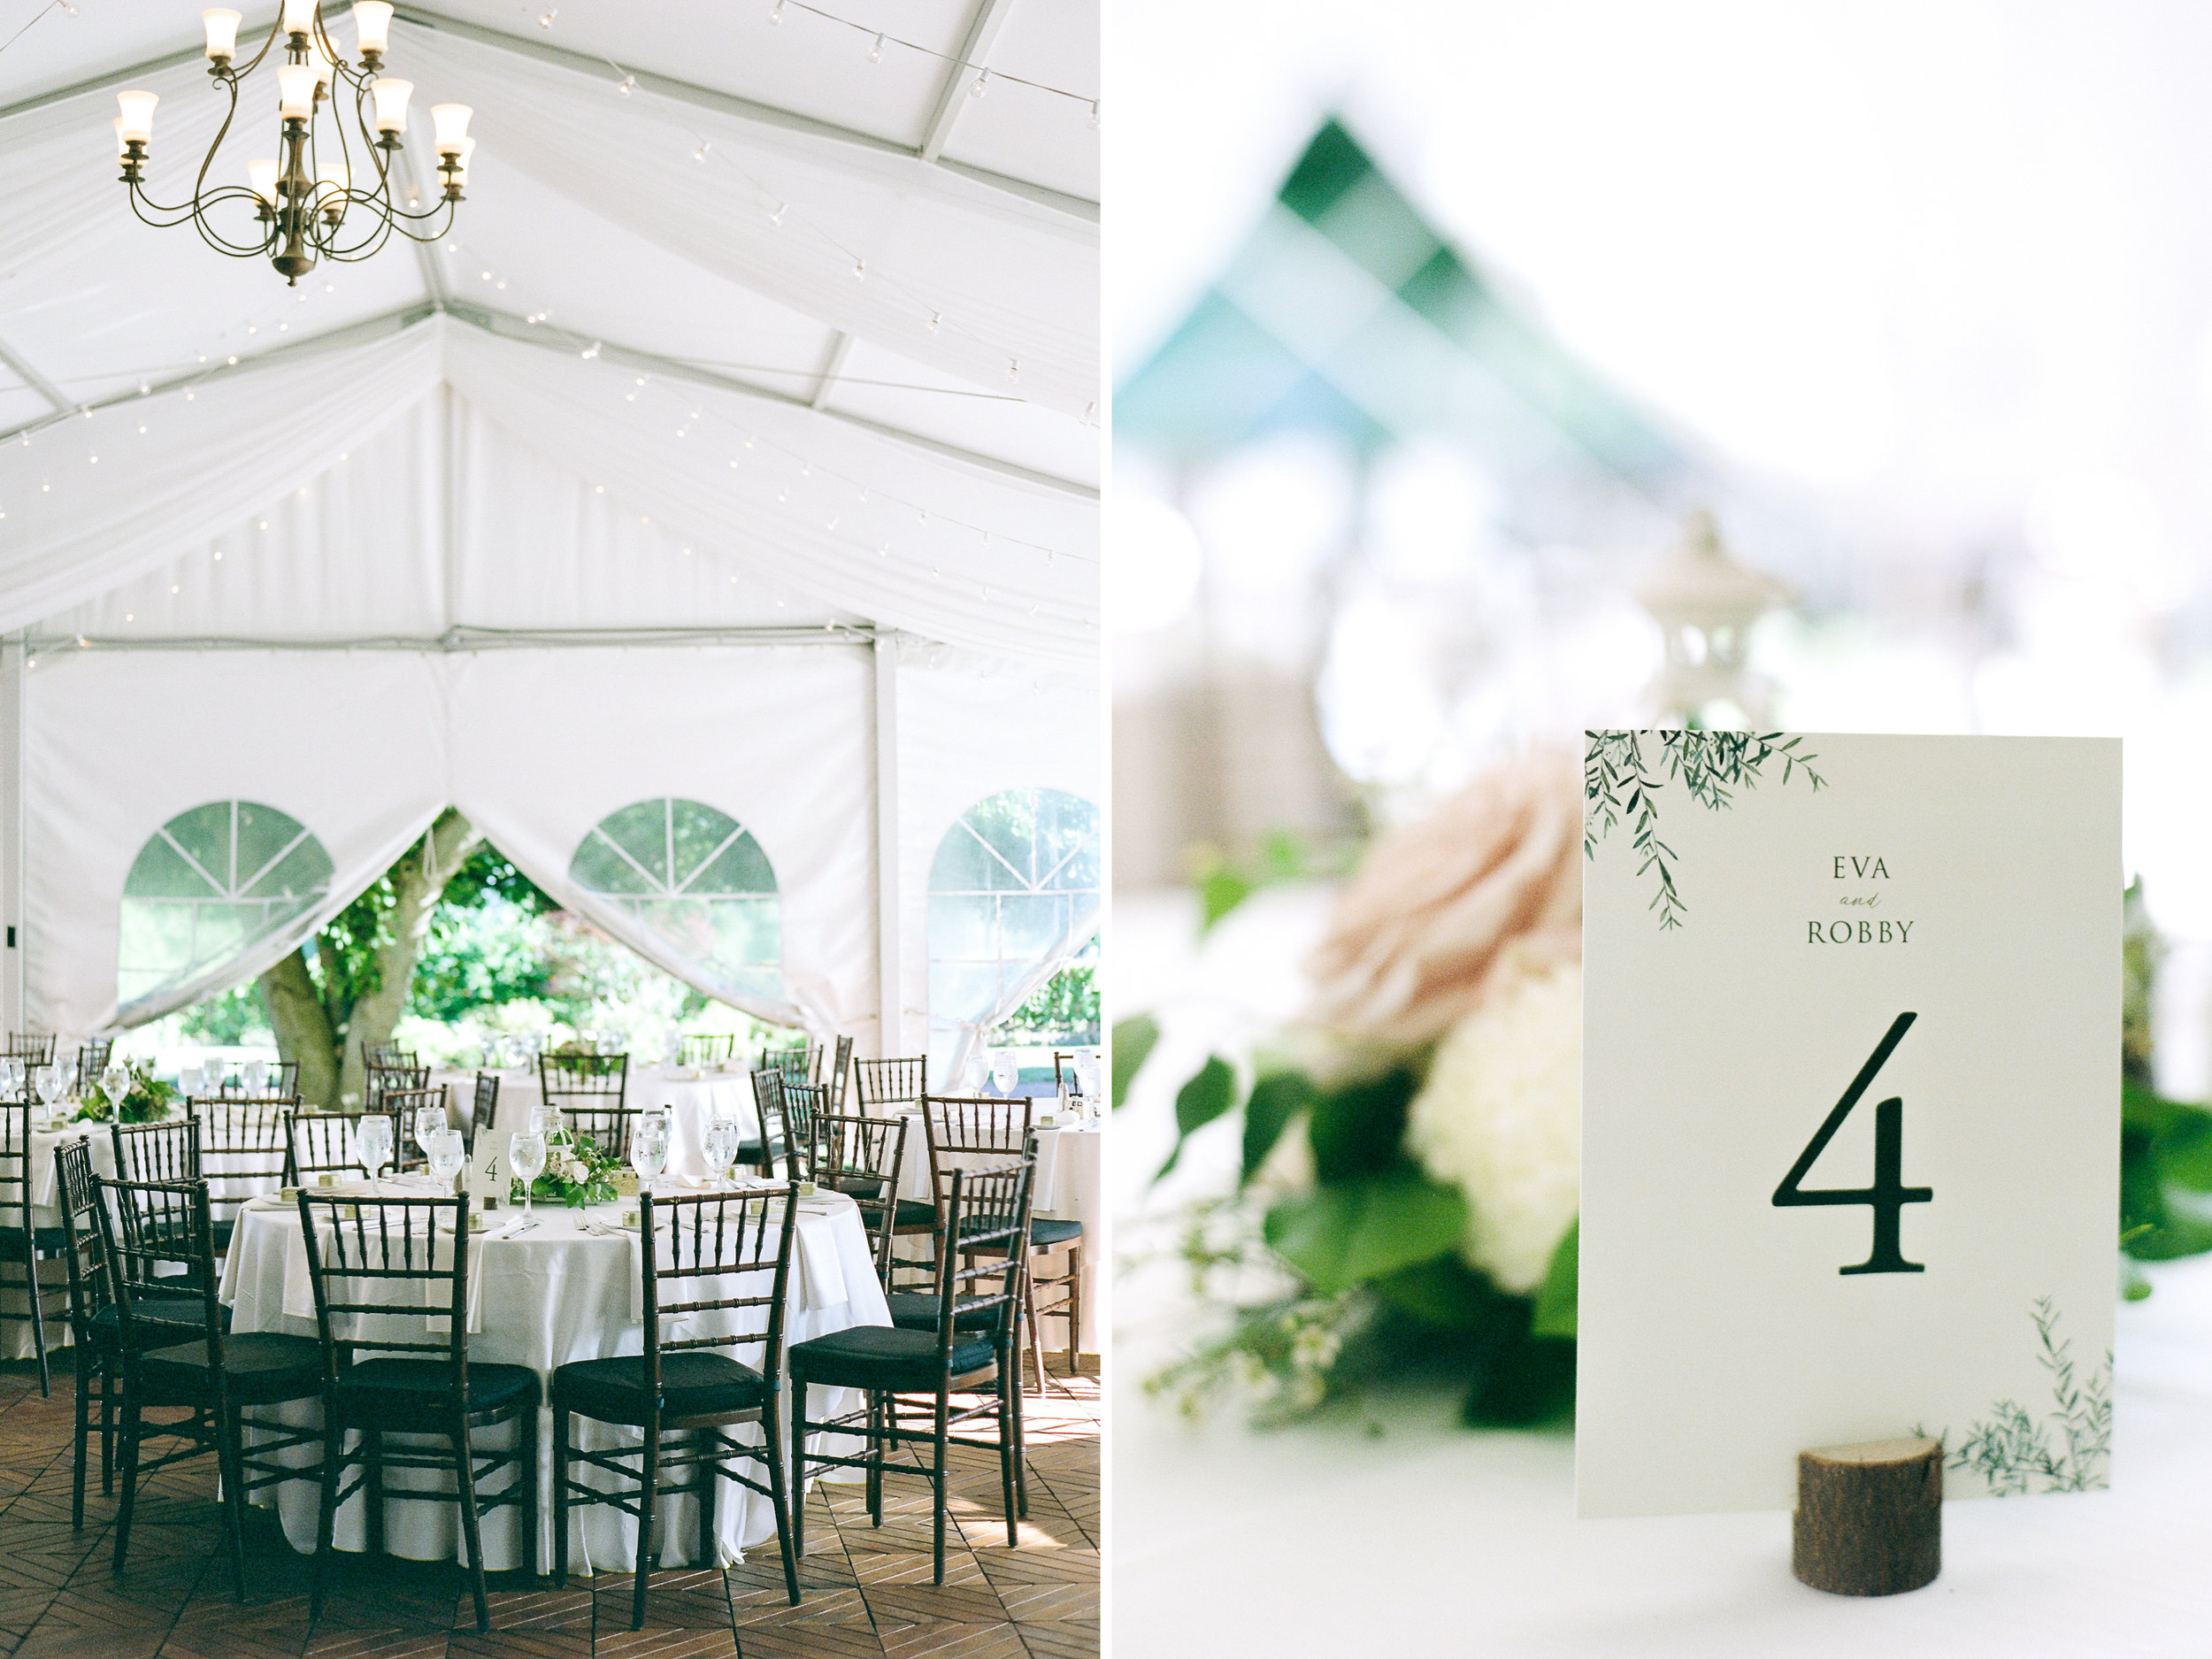 Tented Estate Wedding in the Berkshires MA